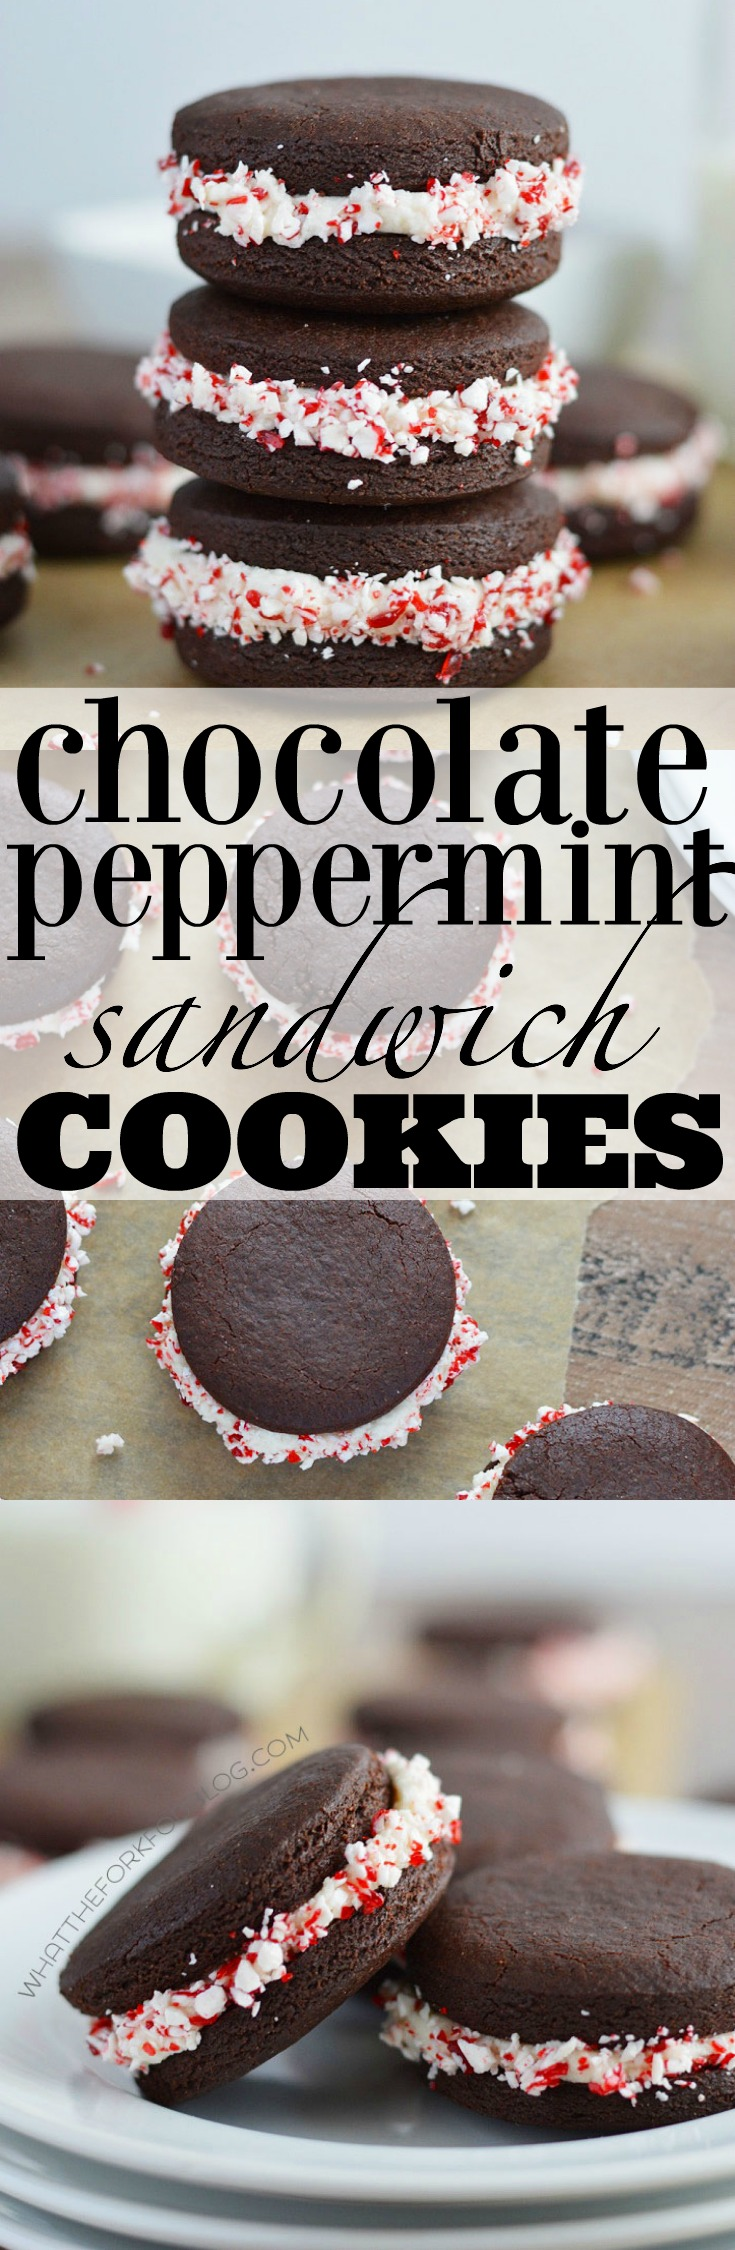 These chocolate peppermint sandwich cookies are full of chocolate and ...